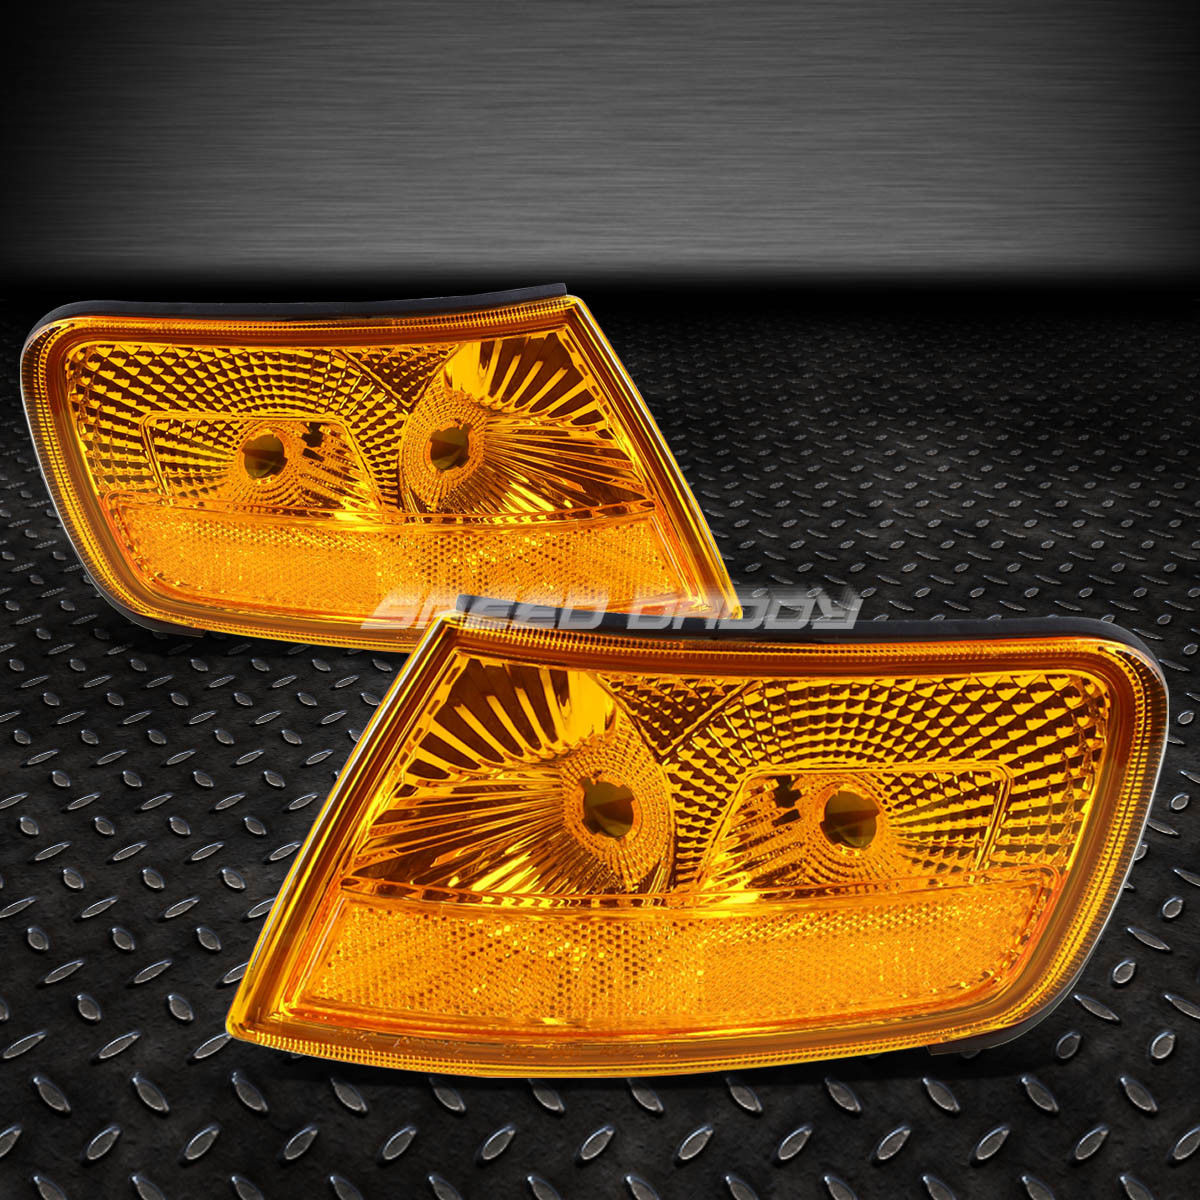 フォグライト FOR 94-97 ACCORD 2DR/4DR CD JDM STYLE AMBER LENS OE BUMPER FOG LIGHT HOUSING SET FOR 94-97 ACCORD 2DR / 4DR CD JDMスタイルアンバースレンズOE BUMPERフォグライトハウスセット